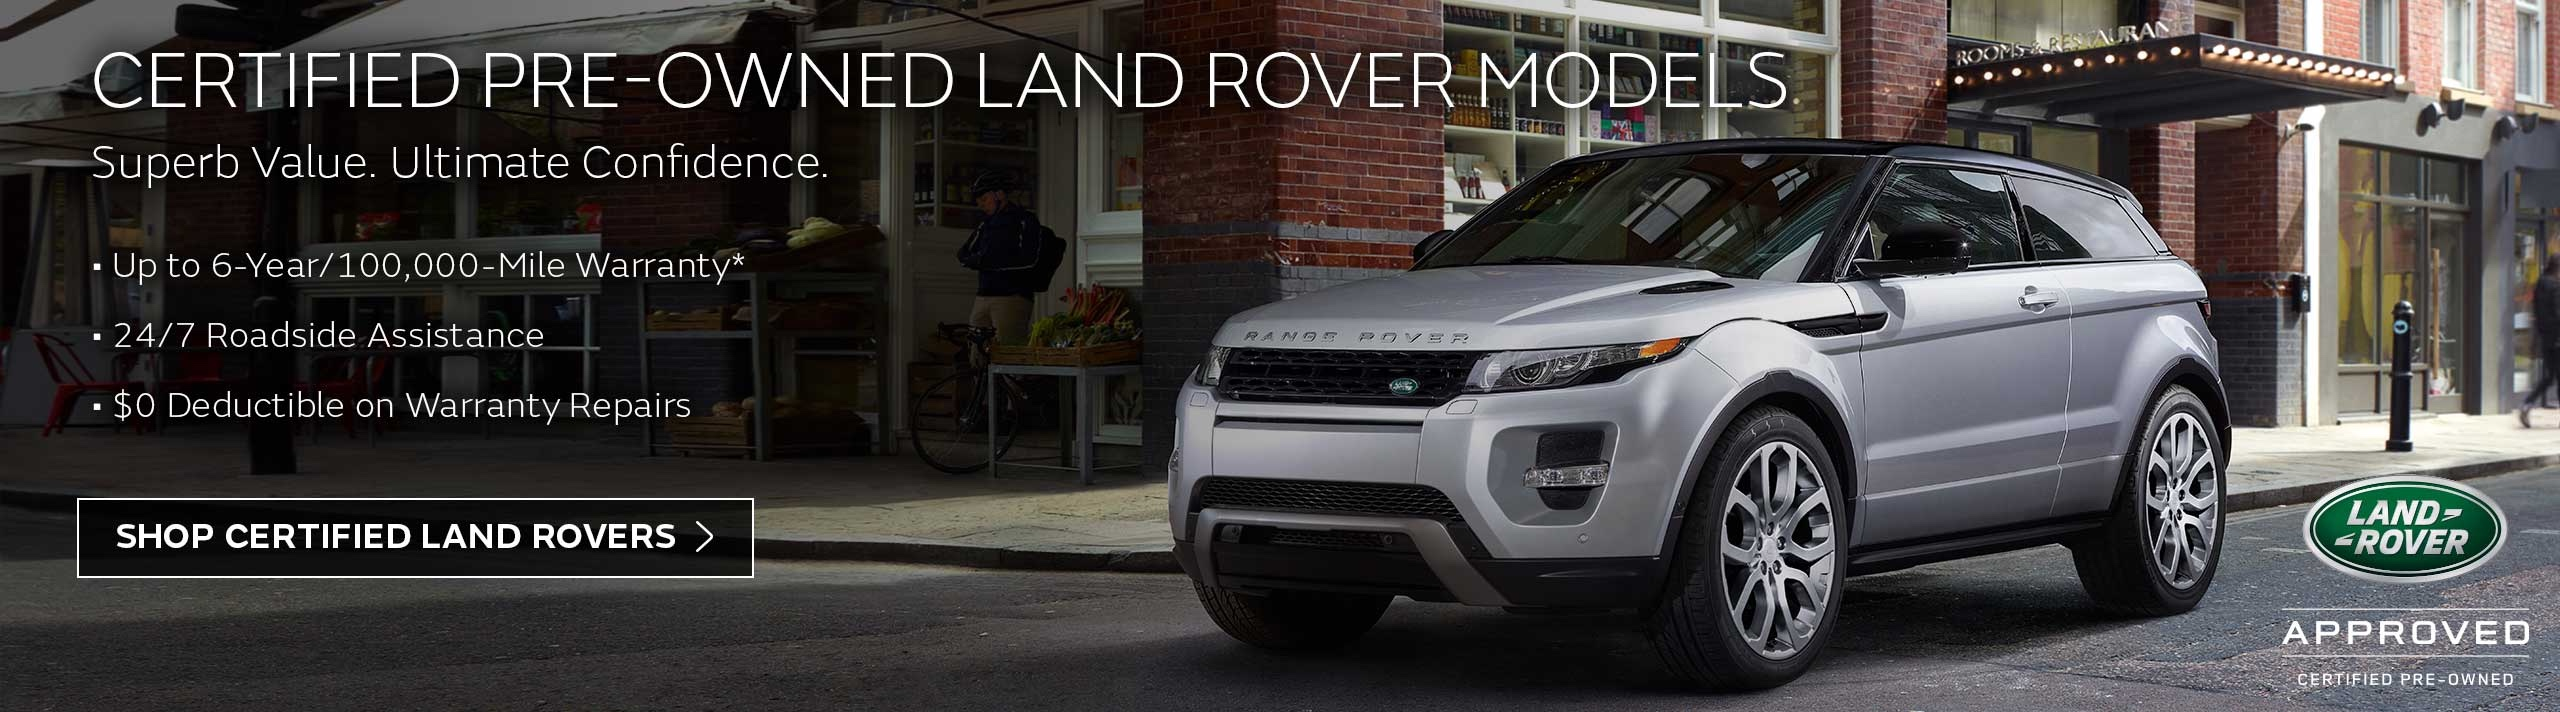 Certified Pre-Owned Land Rovers